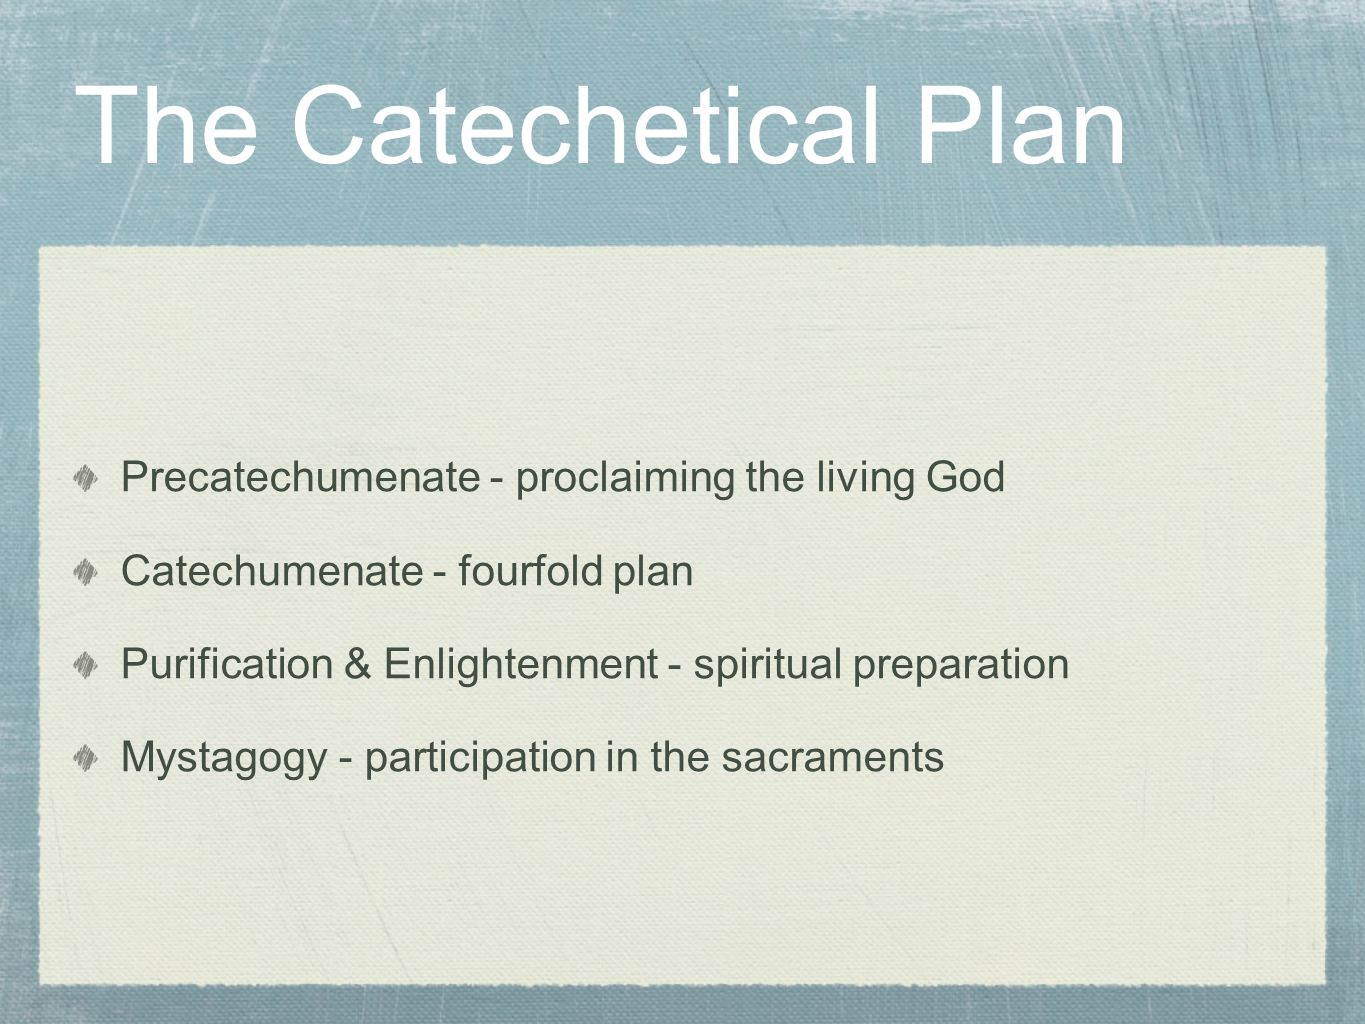 The Catechetical Plan Precatechumenate - proclaiming the living God Catechumenate - fourfold plan Purification & Enlightenment - spiritual preparation Mystagogy - participation in the sacraments